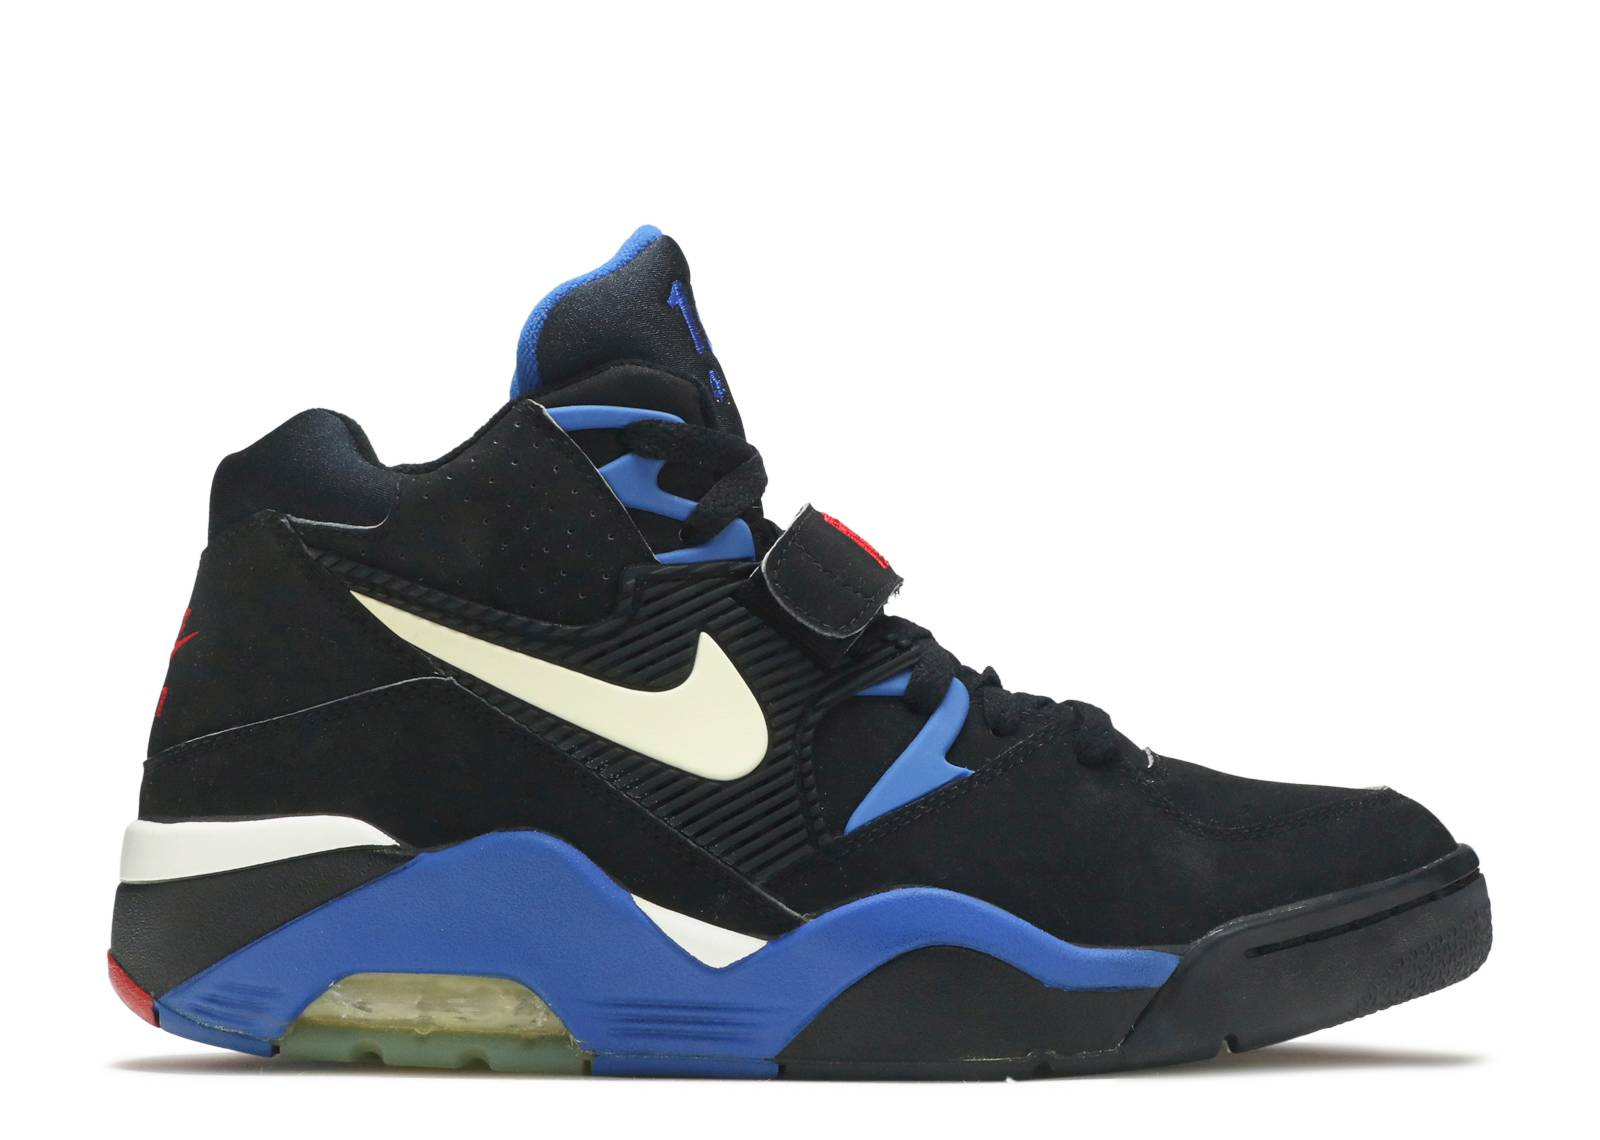 uk availability c1f4e 6dd74 Air Force 180 - Nike - 310095 011 - black white-sport royal-varsity ...